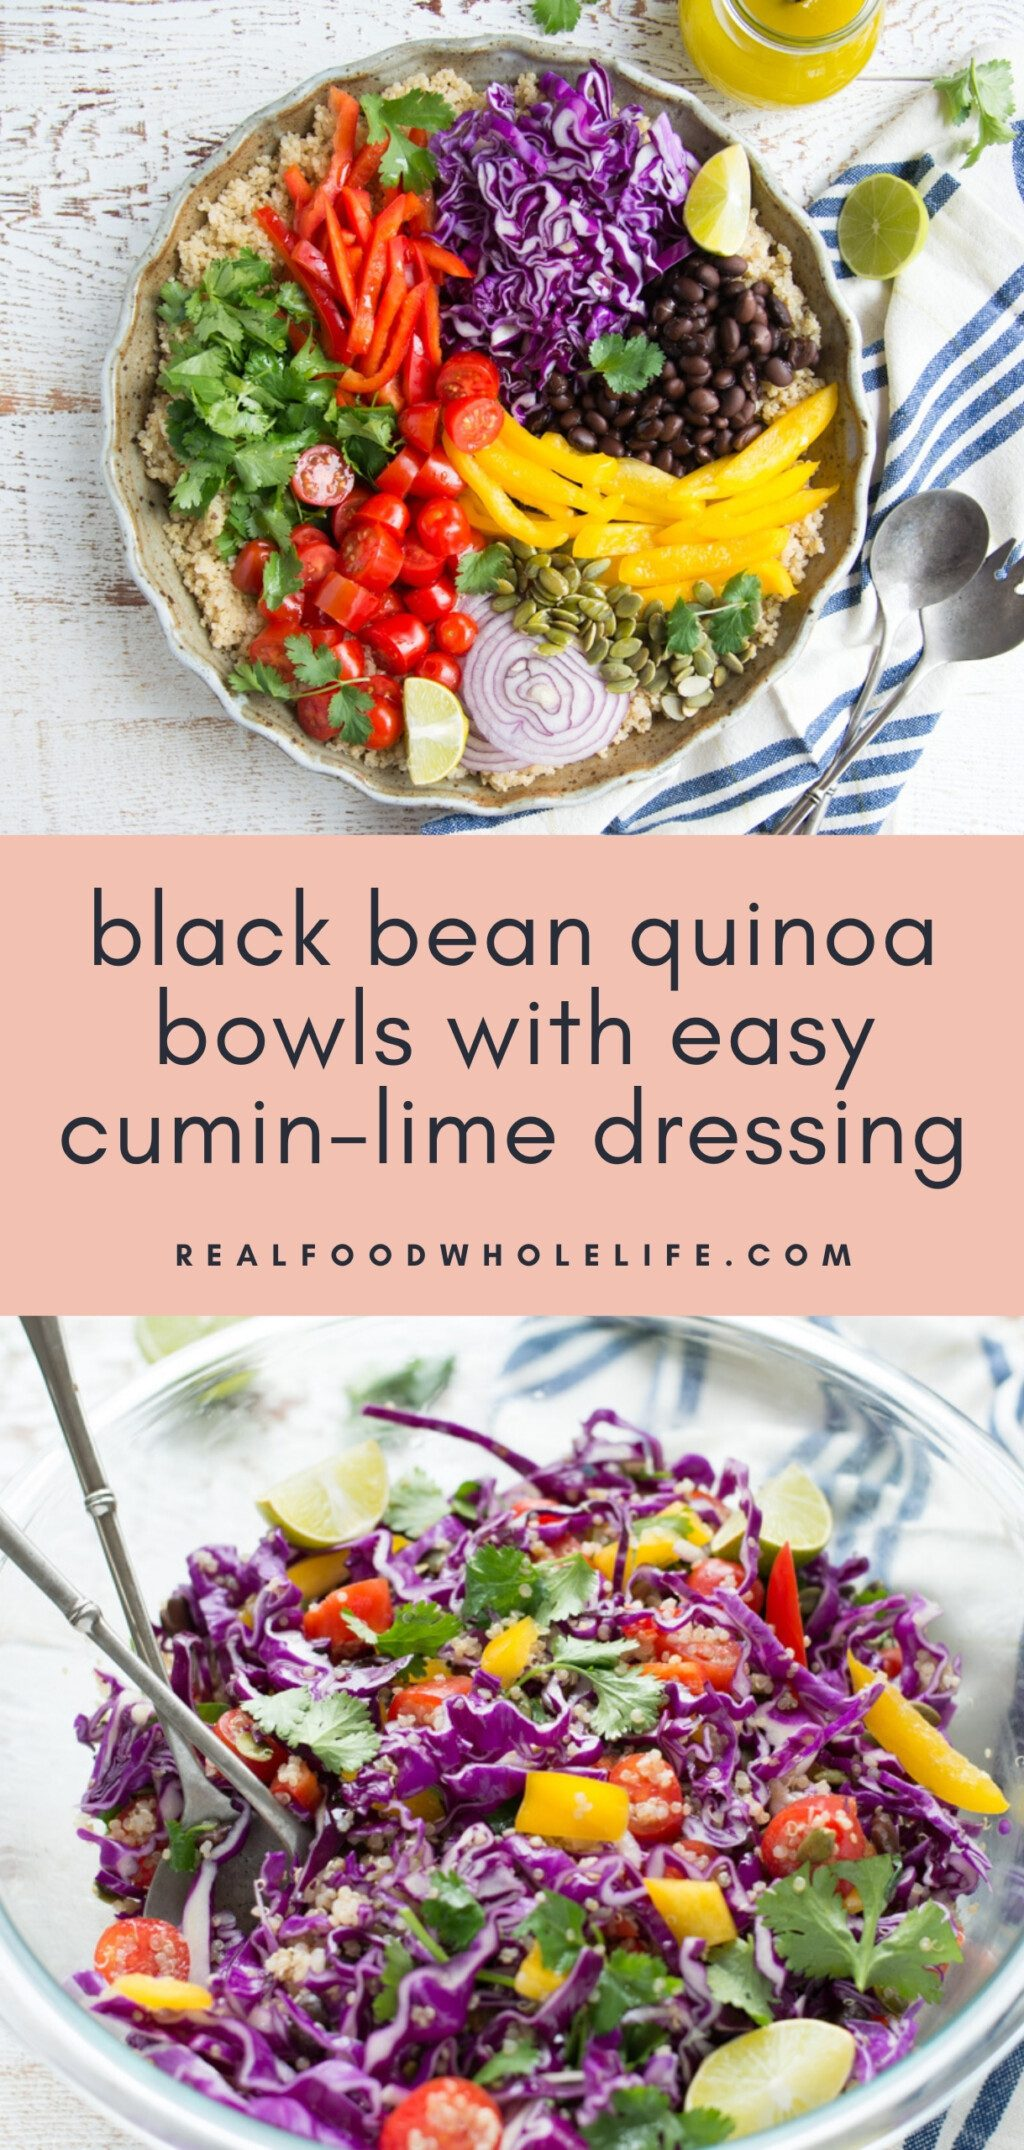 quinoa salads shown in two bowls on white table with striped napkins and pink background with navy text